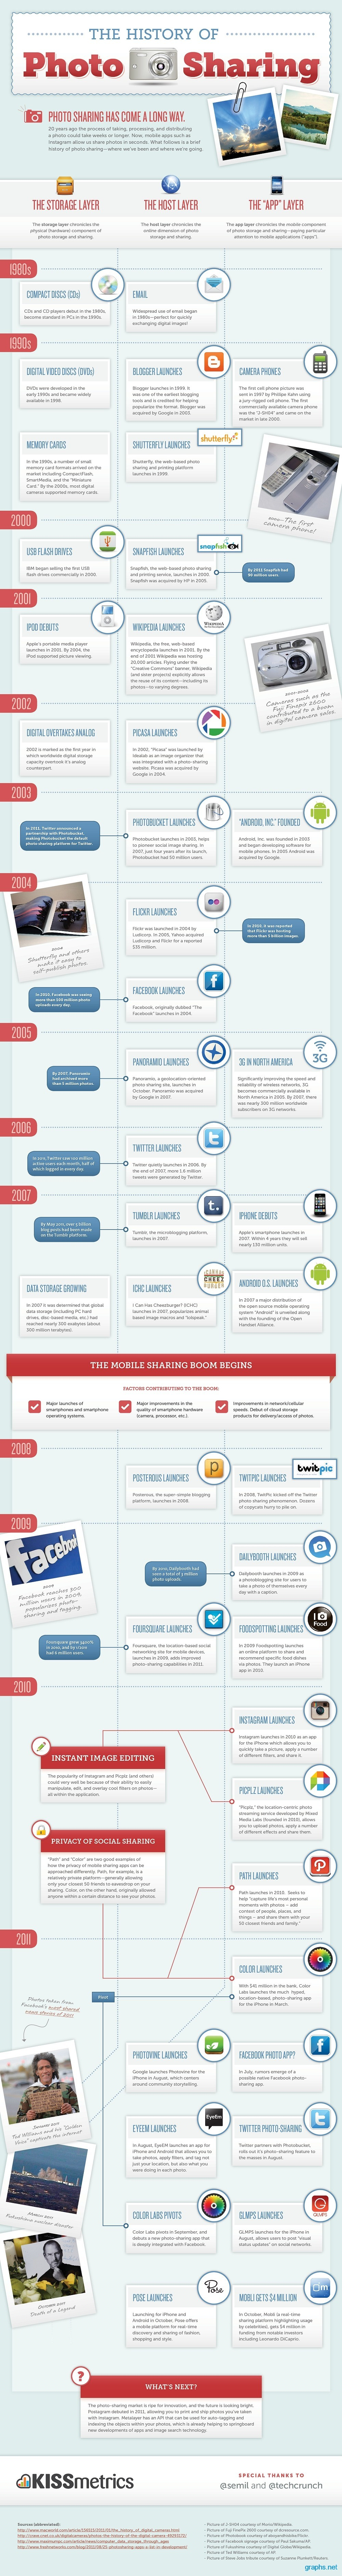 Evolution of Photo Sharing